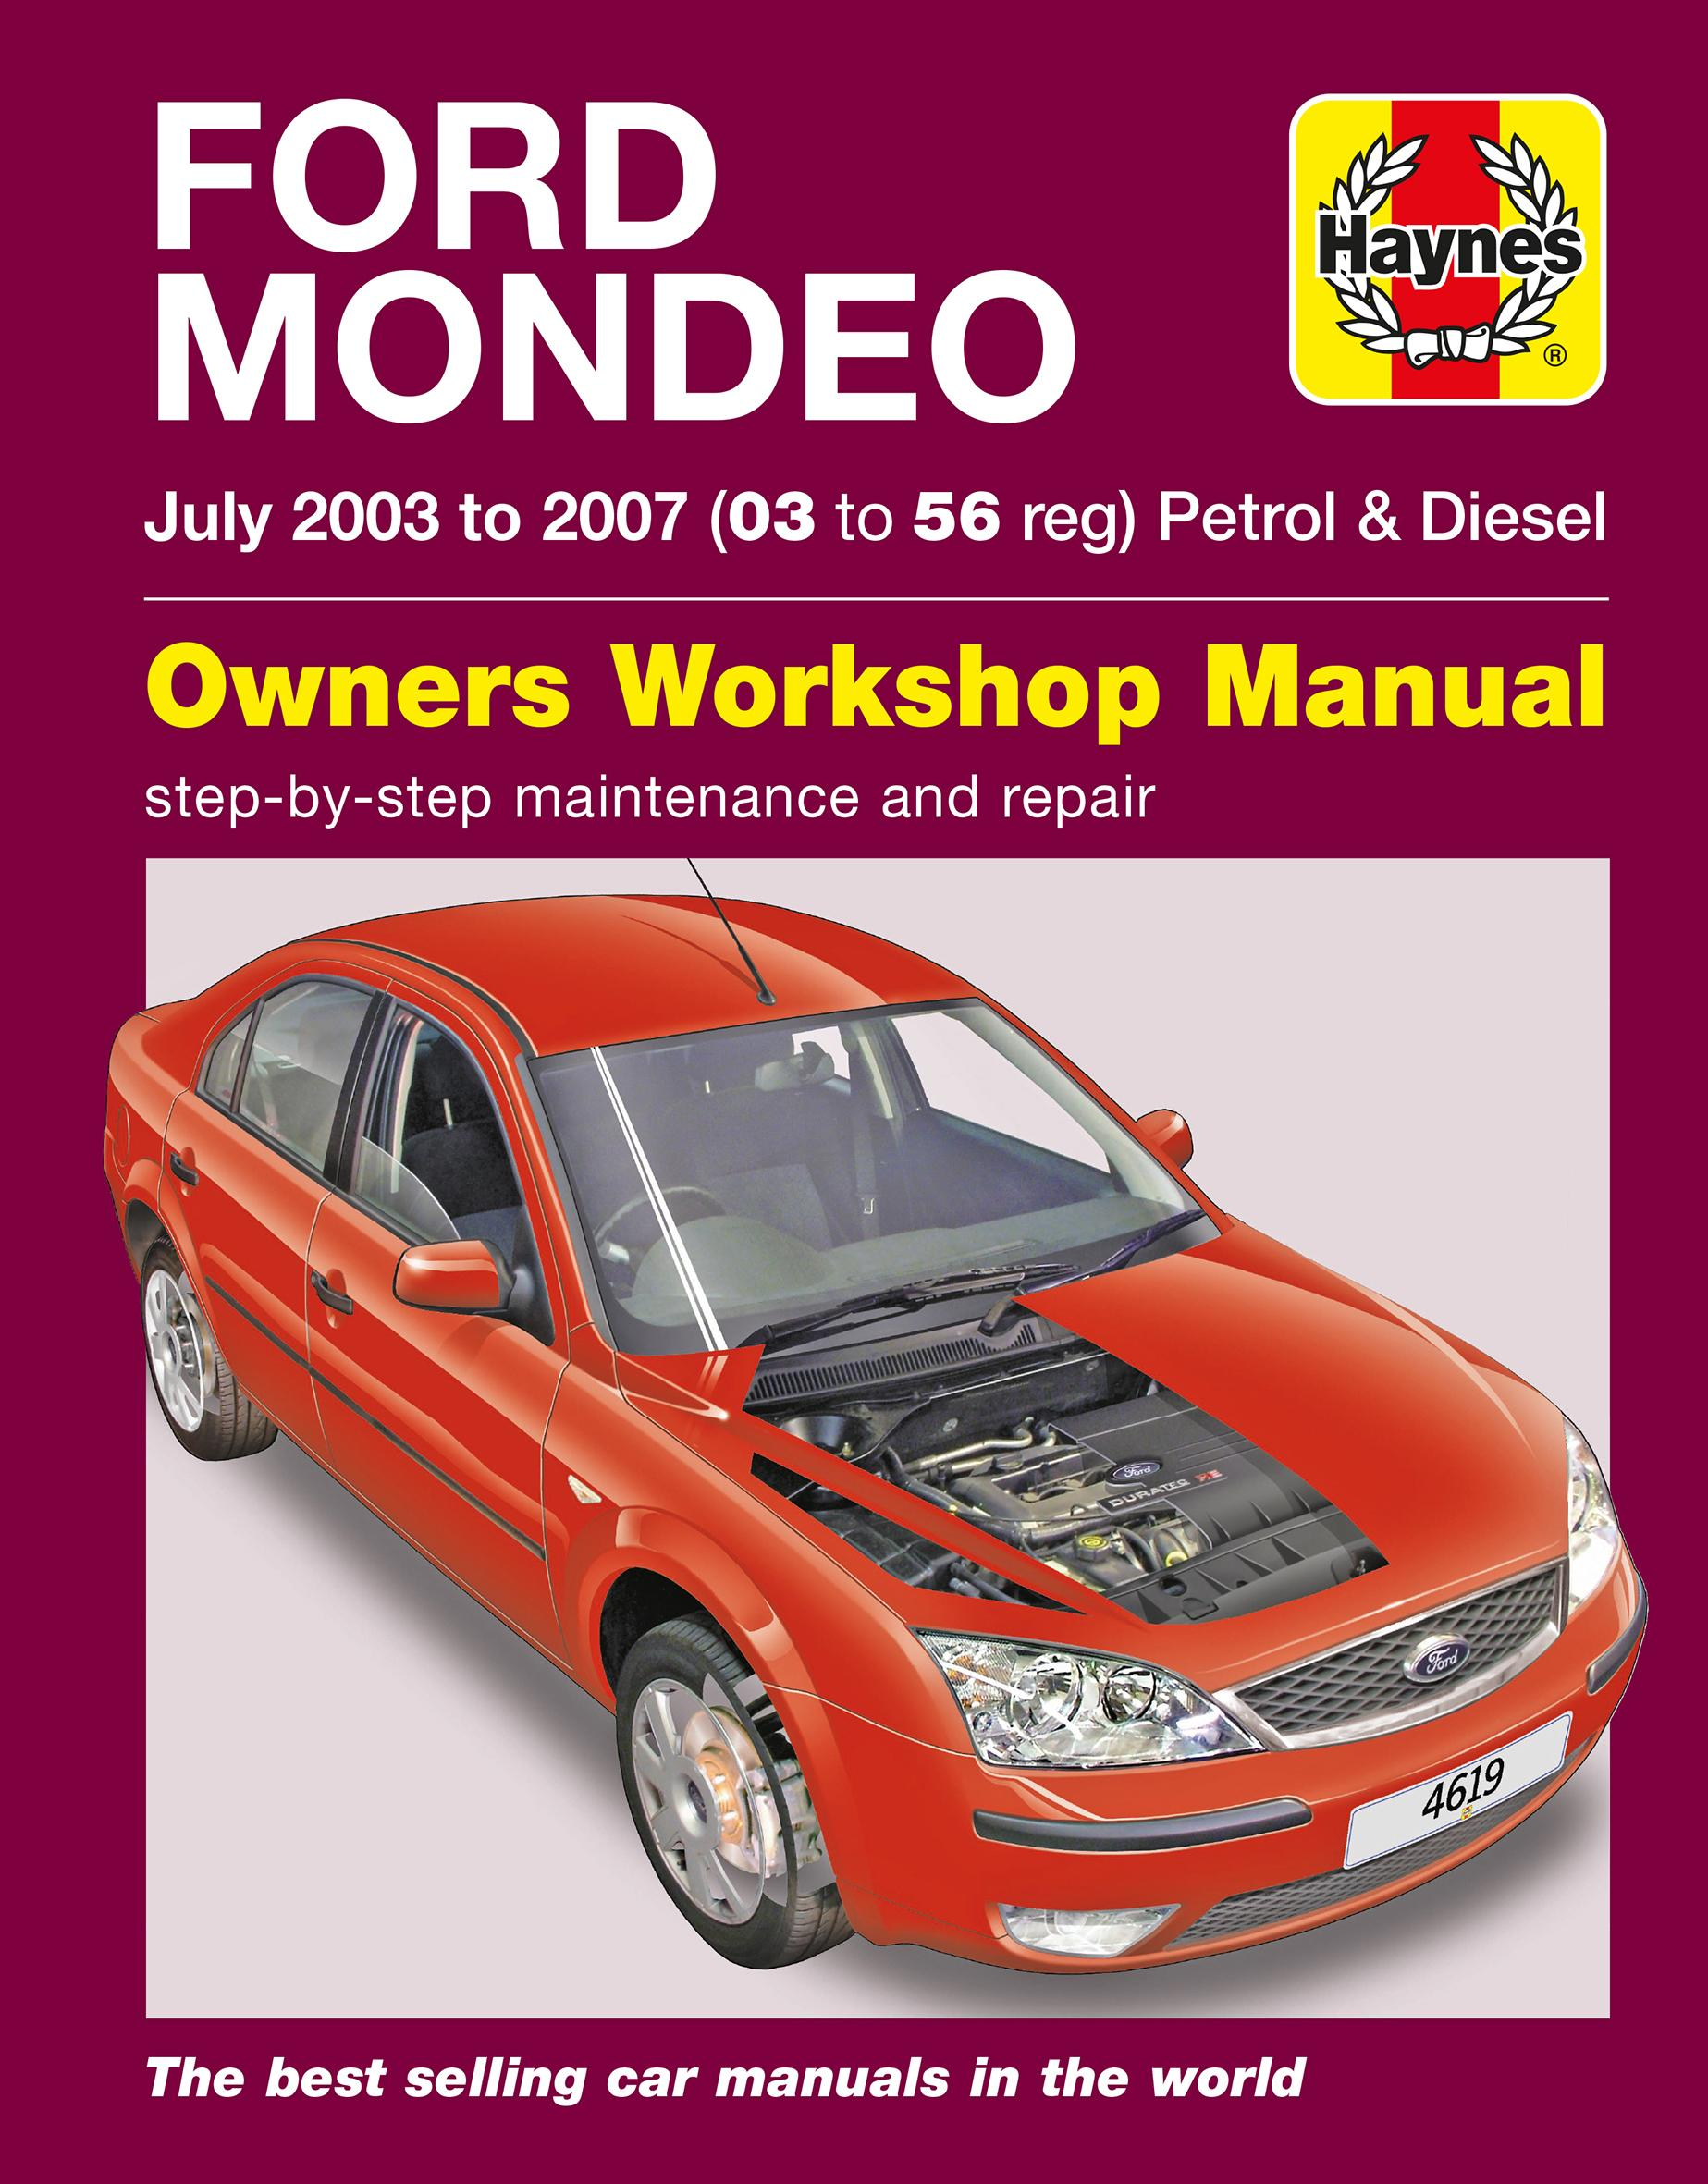 haynes ford mondeo july 03 07 m rh halfords com ford focus mk3 repair manual pdf ford focus mk3 repair manual pdf